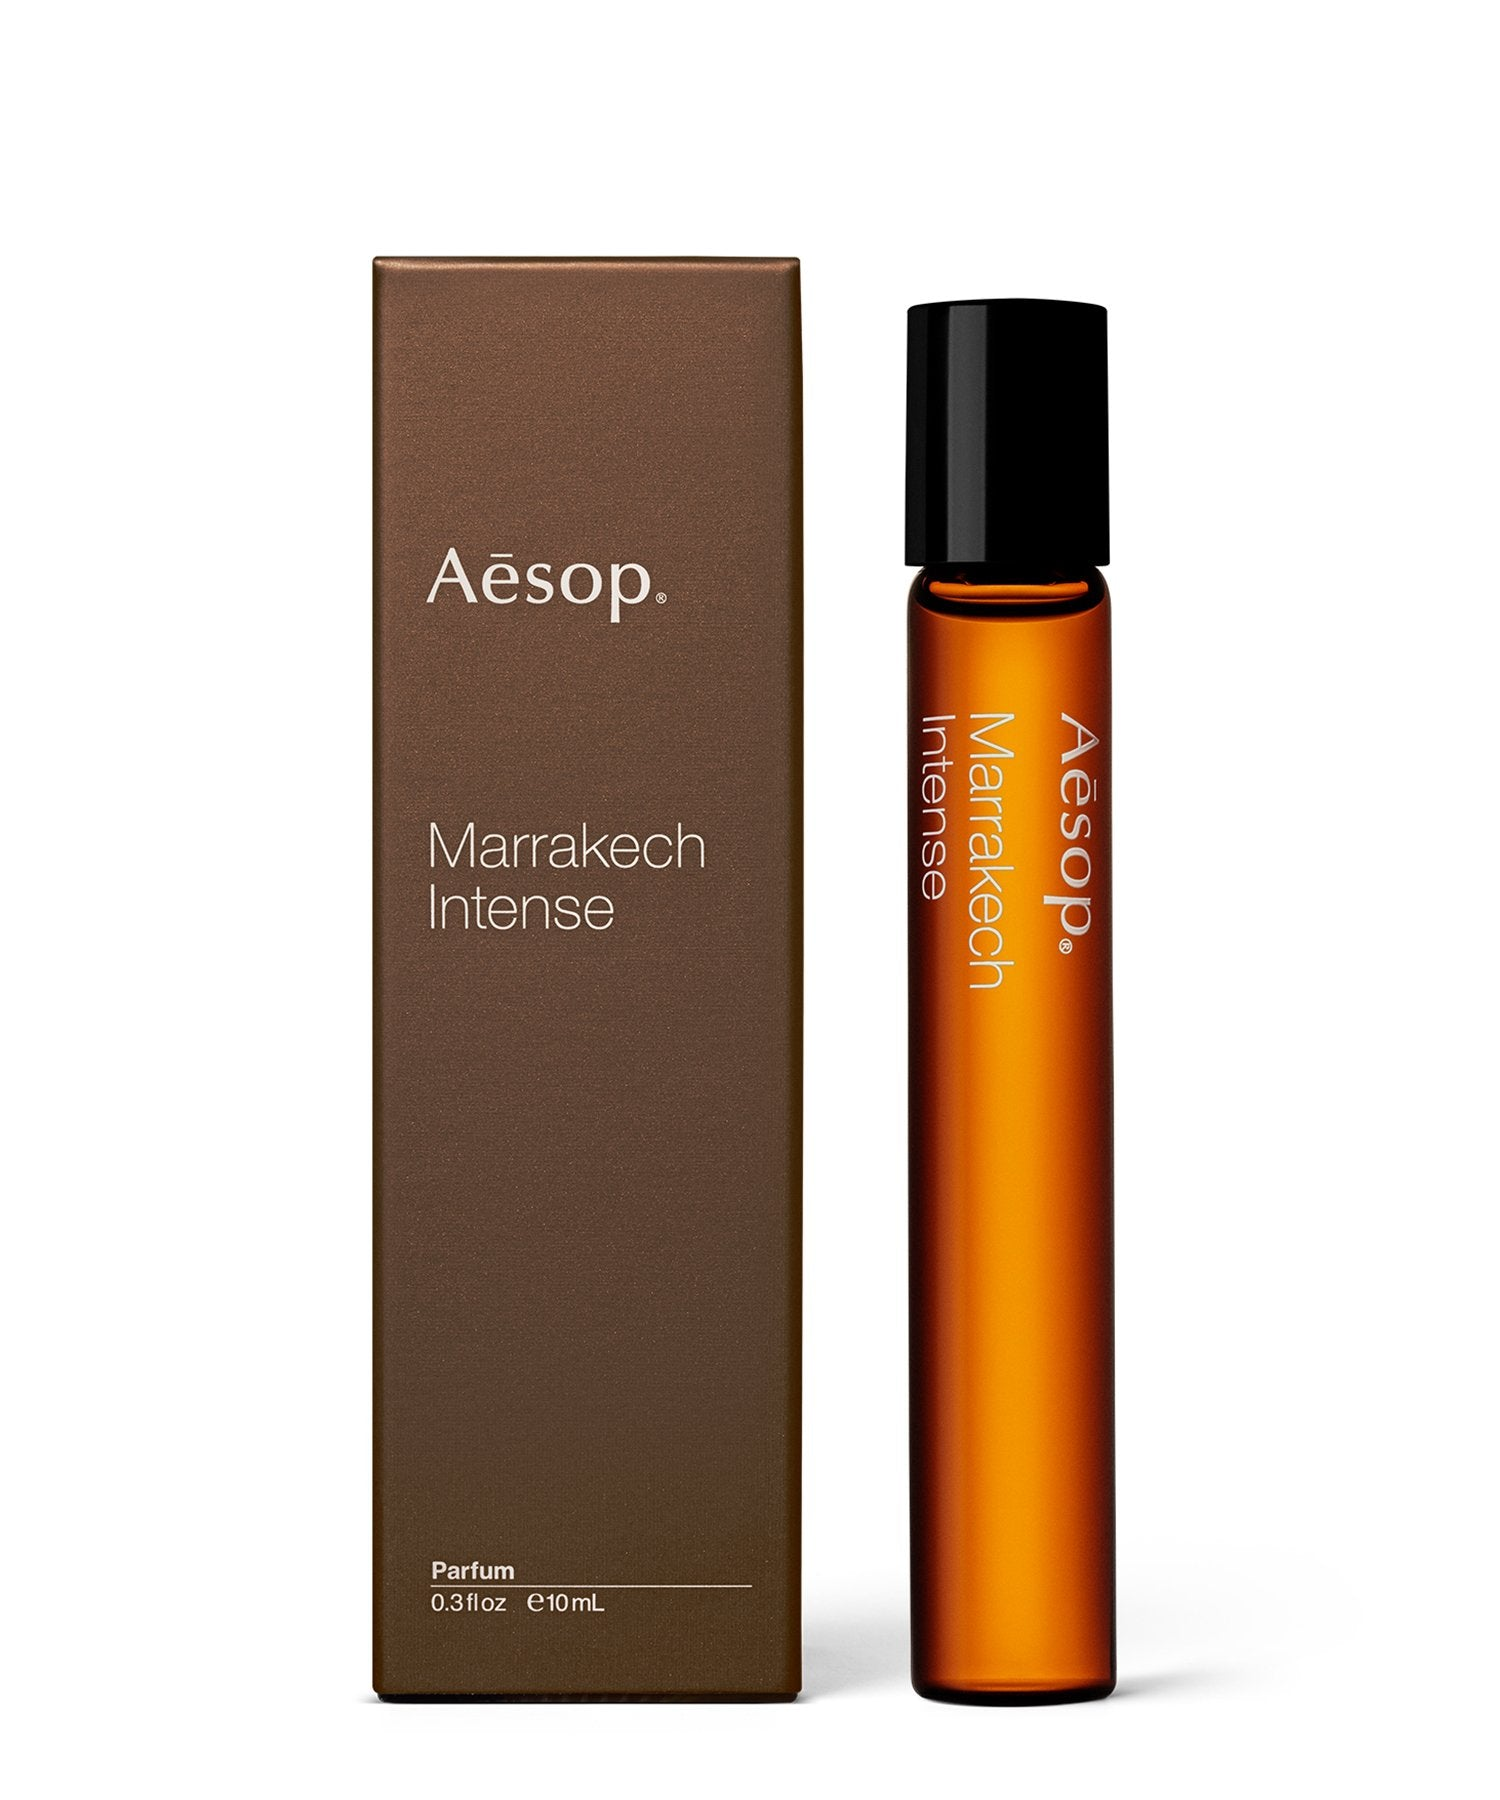 Aesop Marrakech Intense Parfum 10 mL